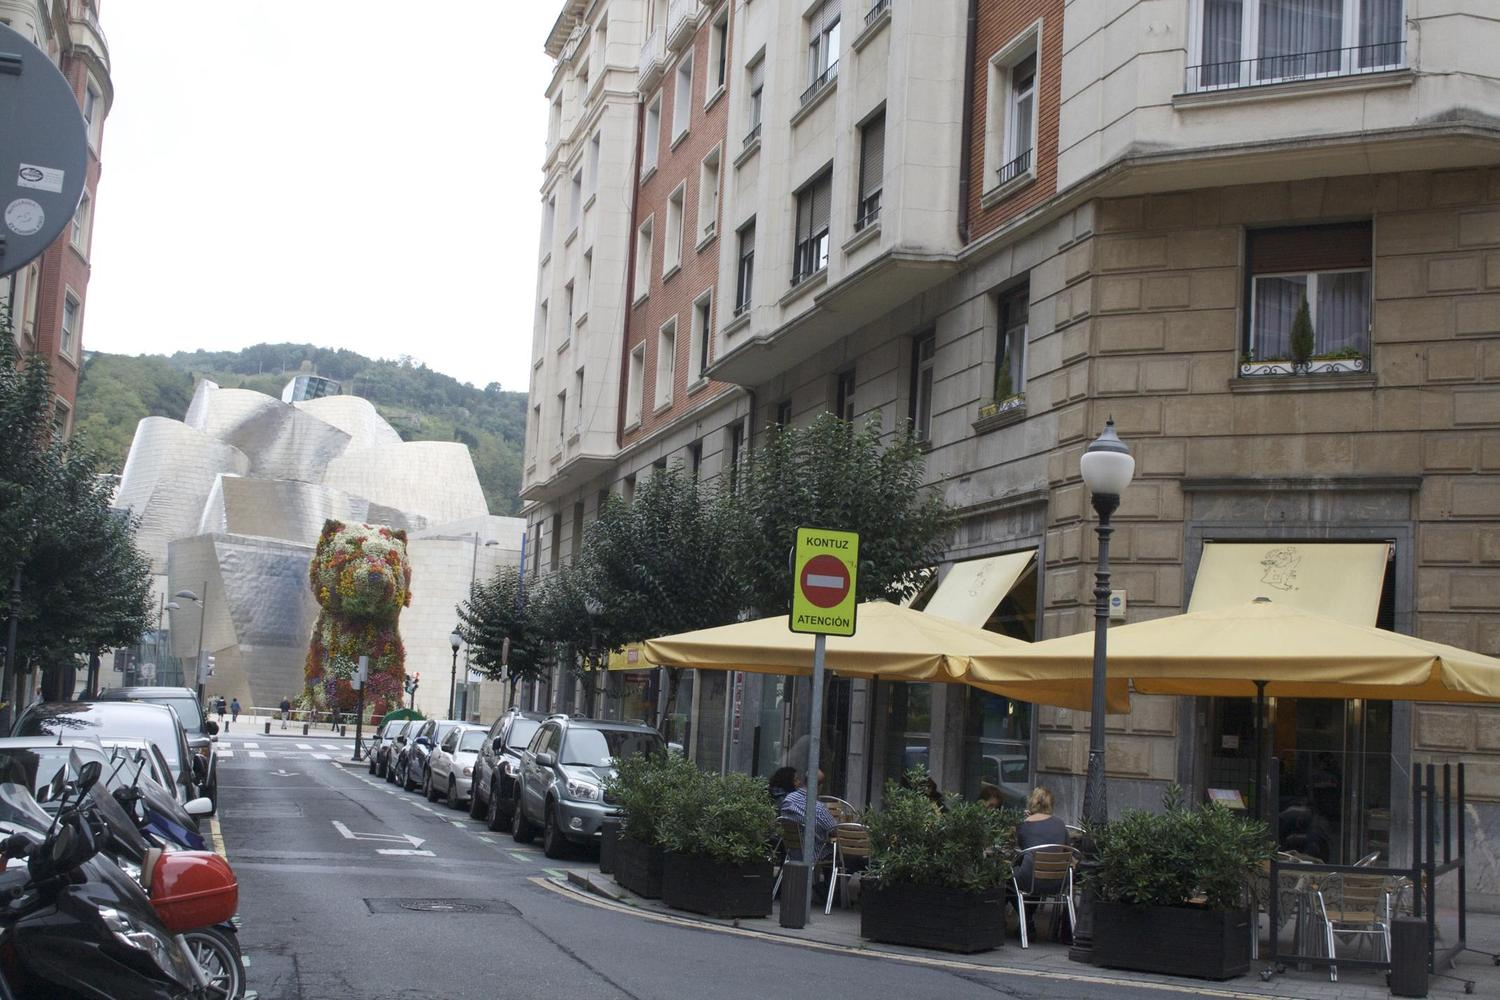 The Guggenheim museum ambushes you from Bilbao's traditional streets